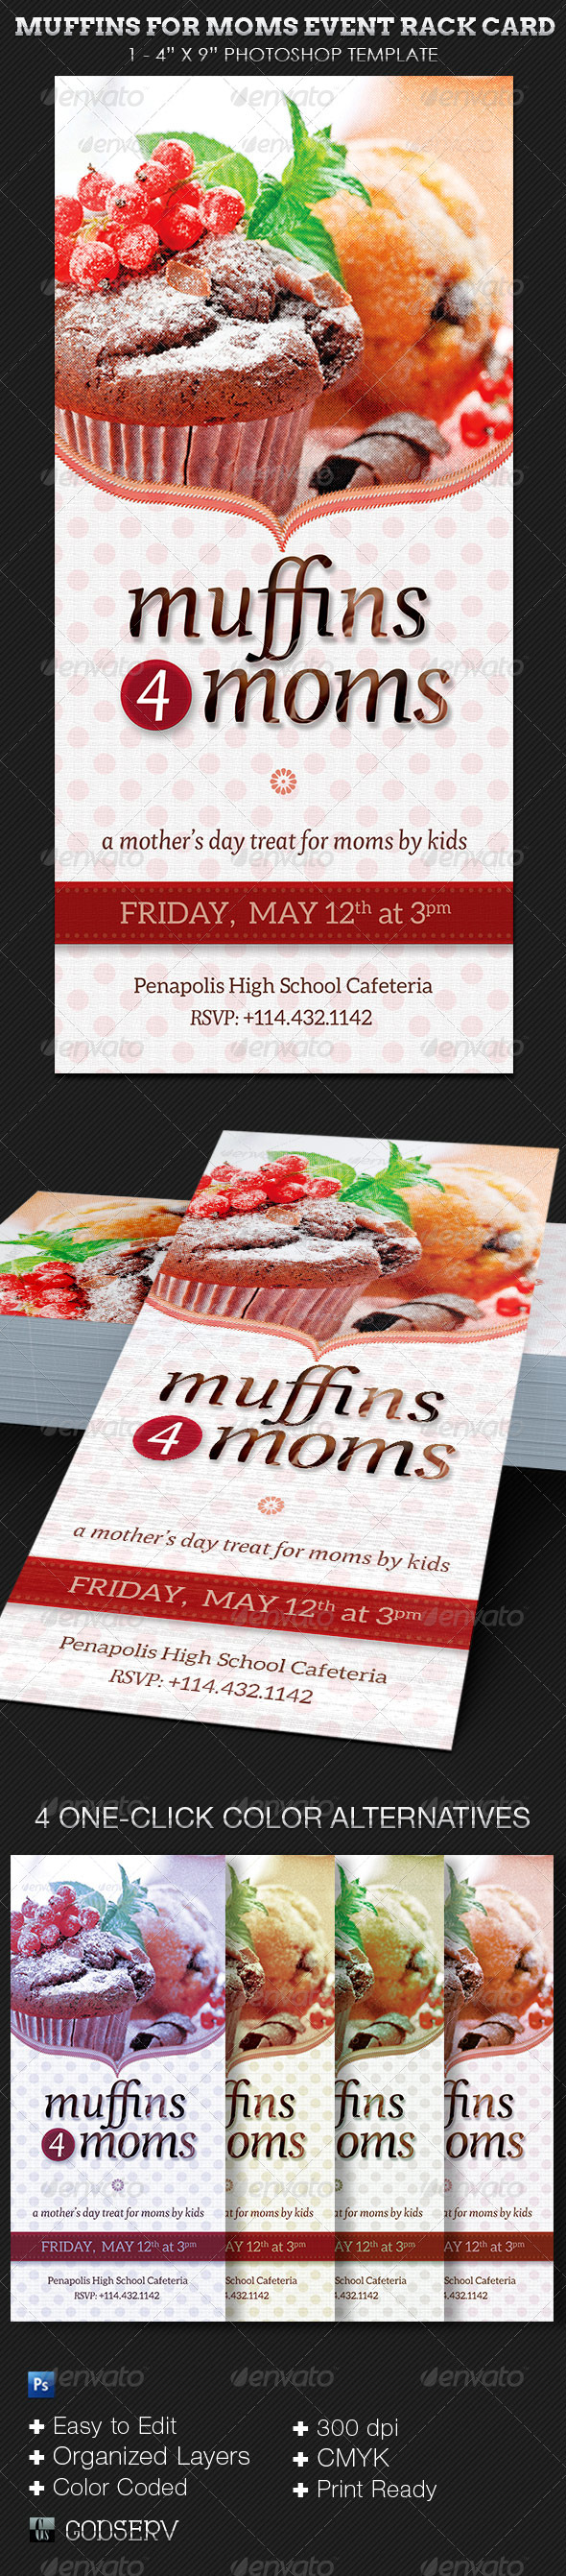 GraphicRiver Muffins for Moms Event Rack Card Template 7596113